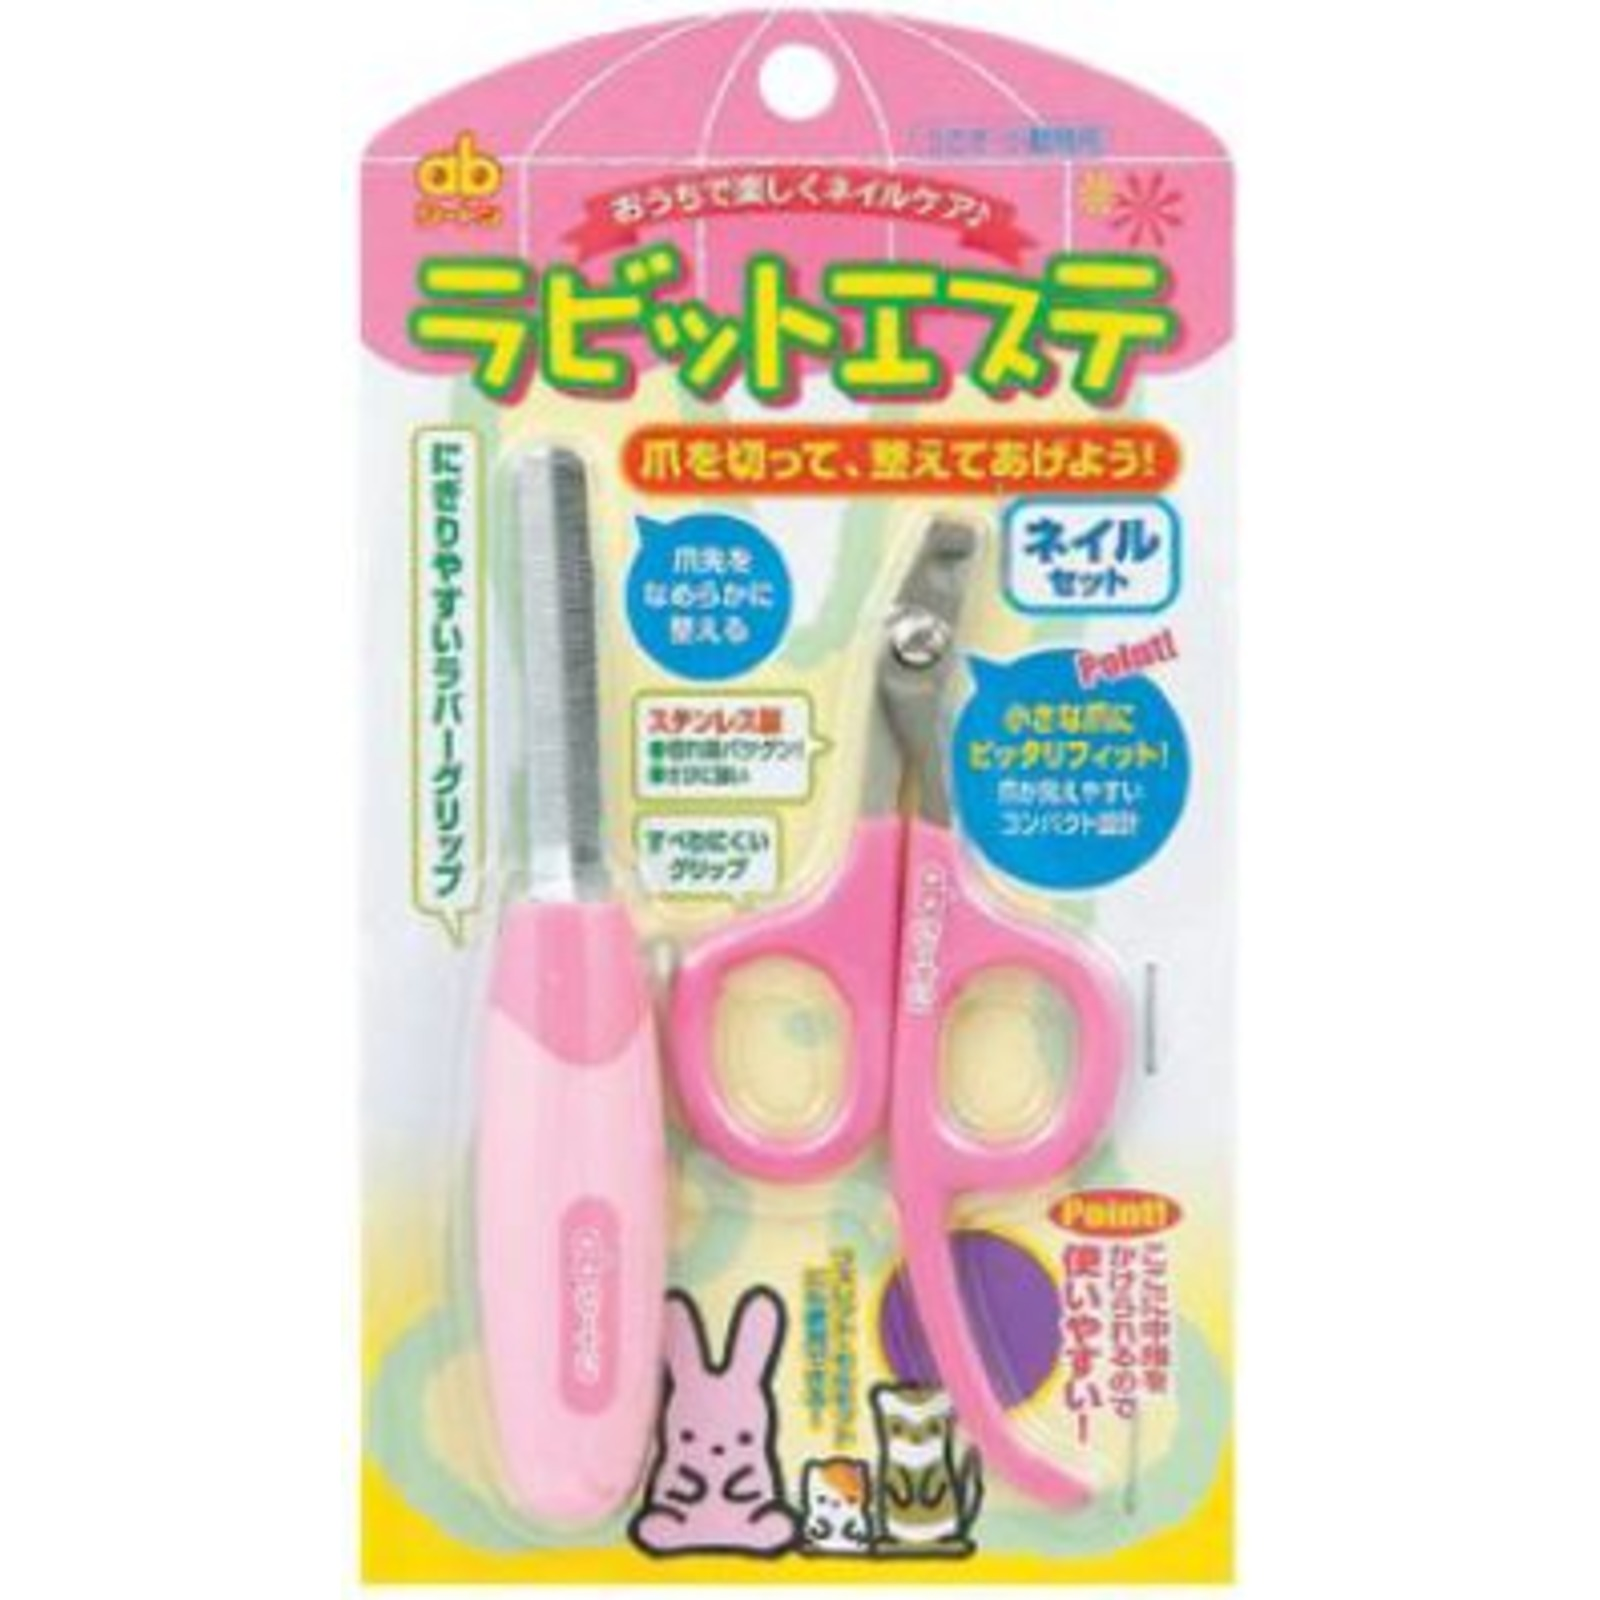 Gex Rabbit Nail Clipper/File Set